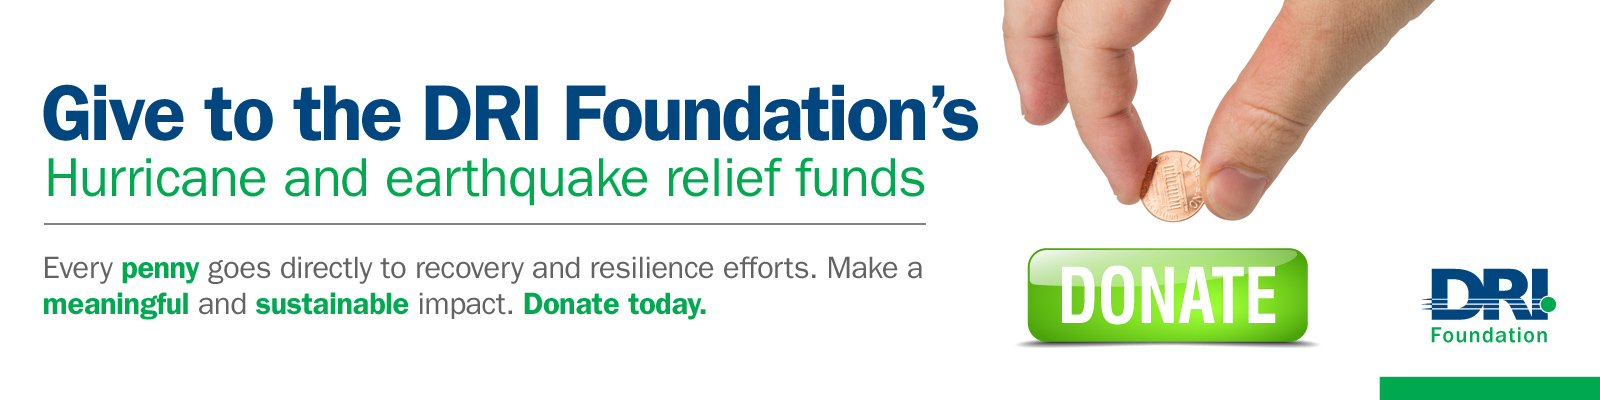 Hurricane Fund